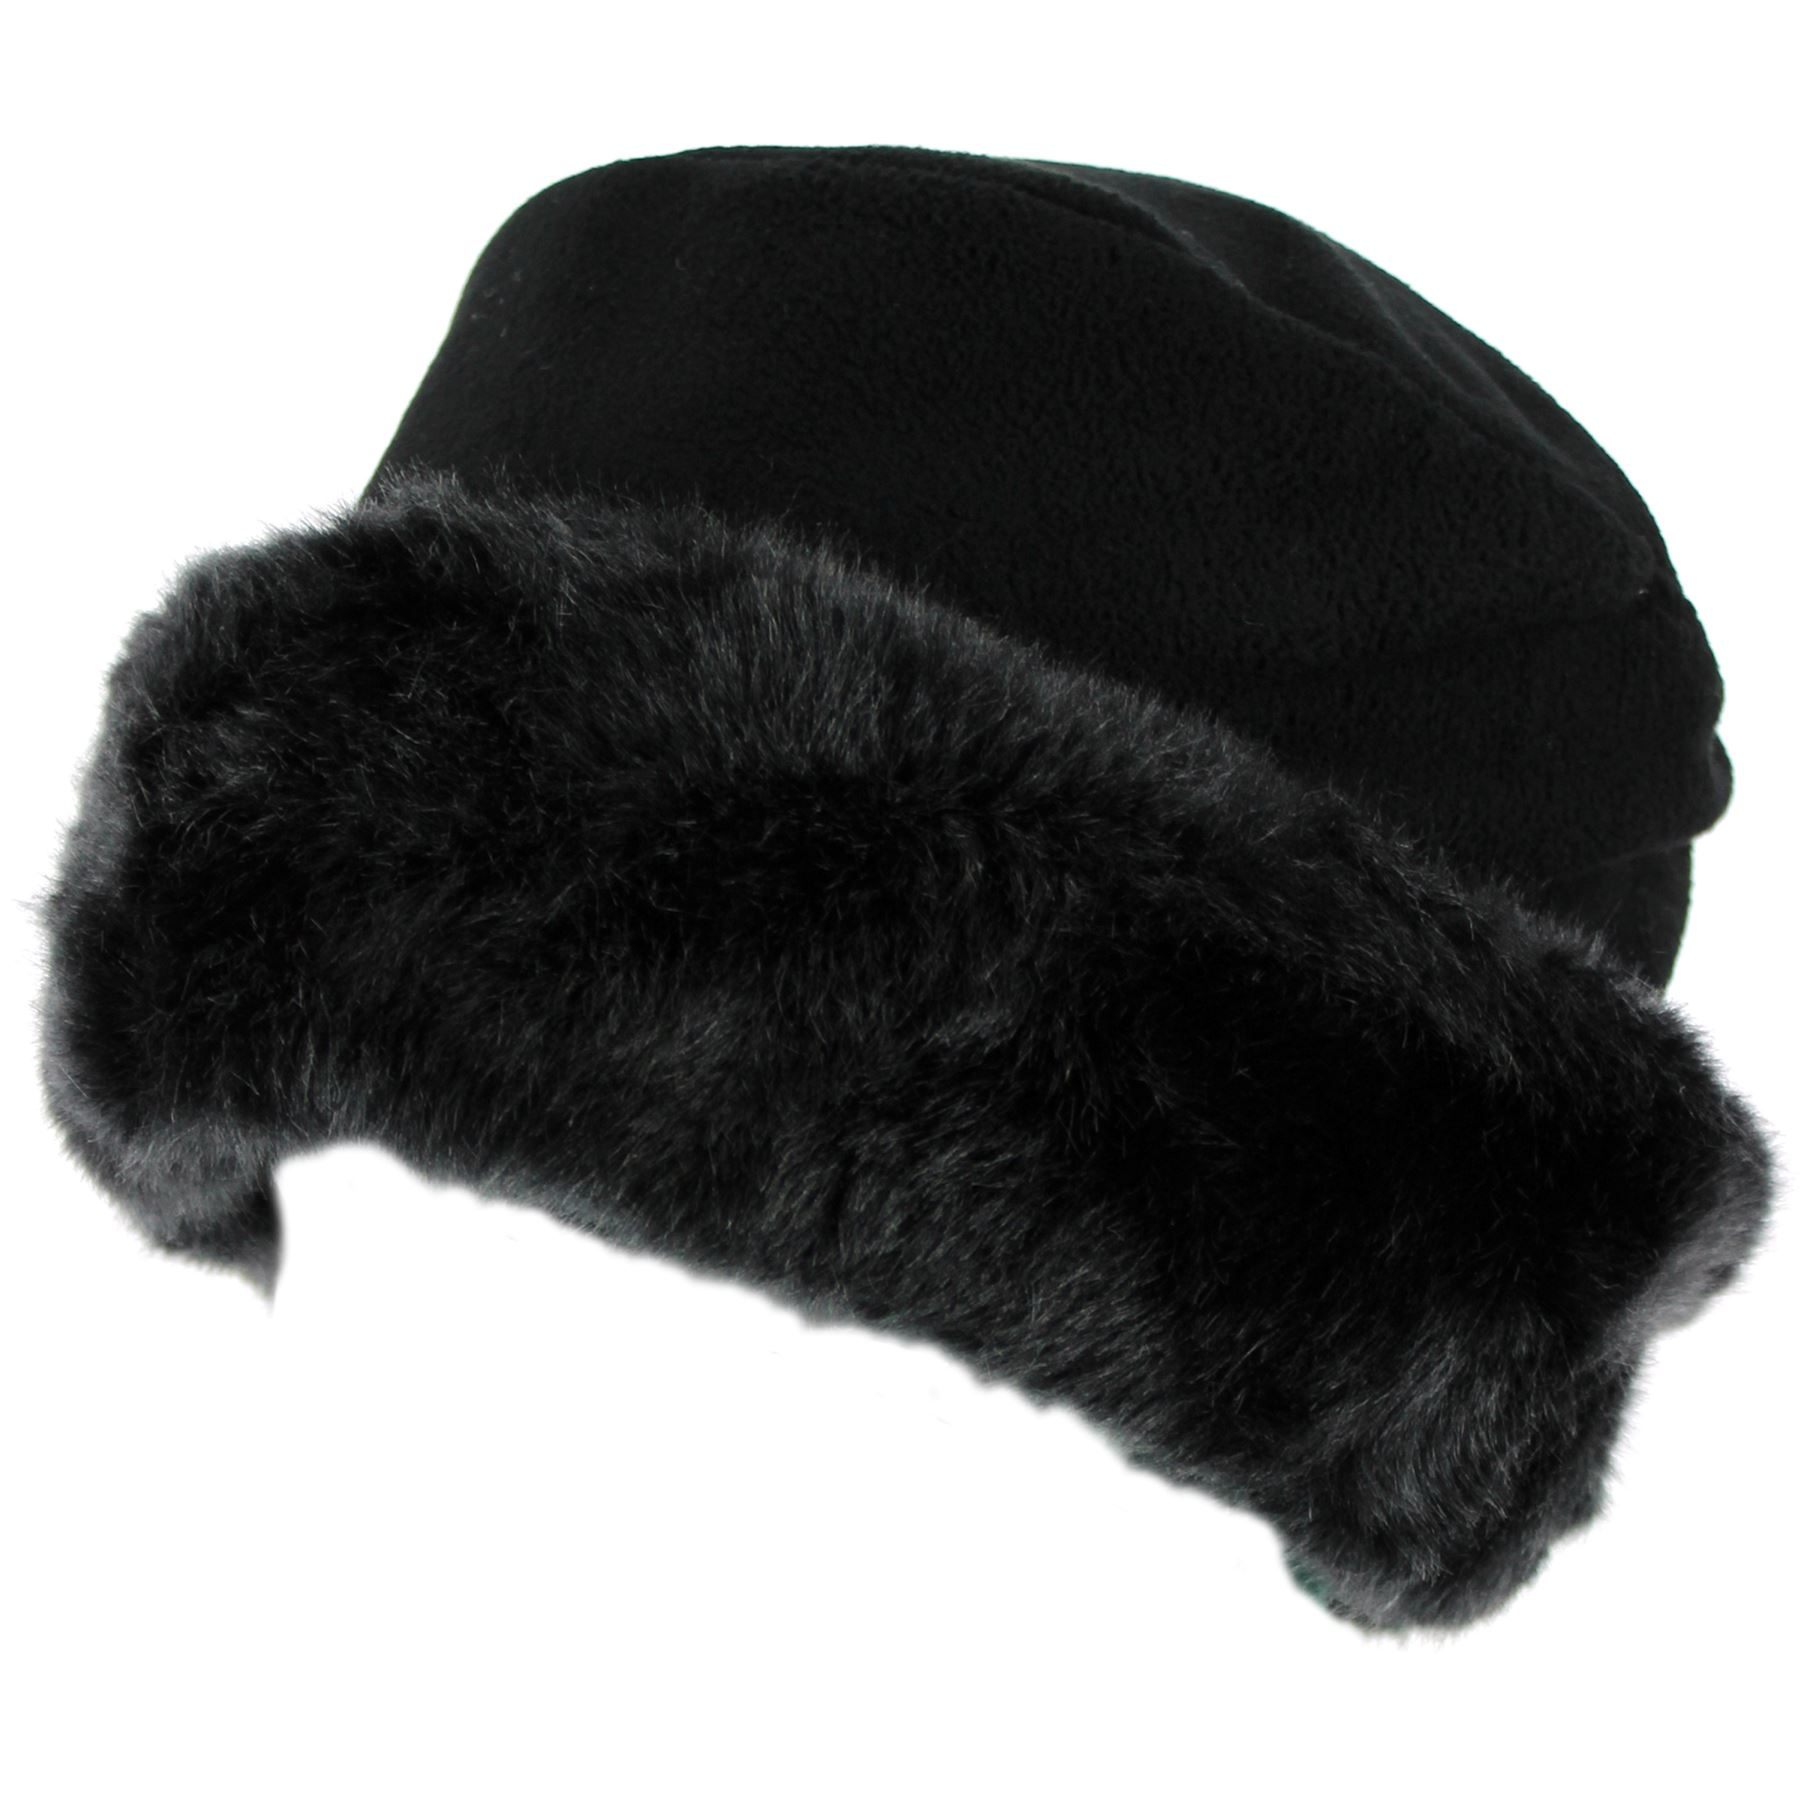 343037fa081cd Details about Fleece Hat Fur Faux Black White Snow Winter Ladies Womens New  Fashion Brim Cuff